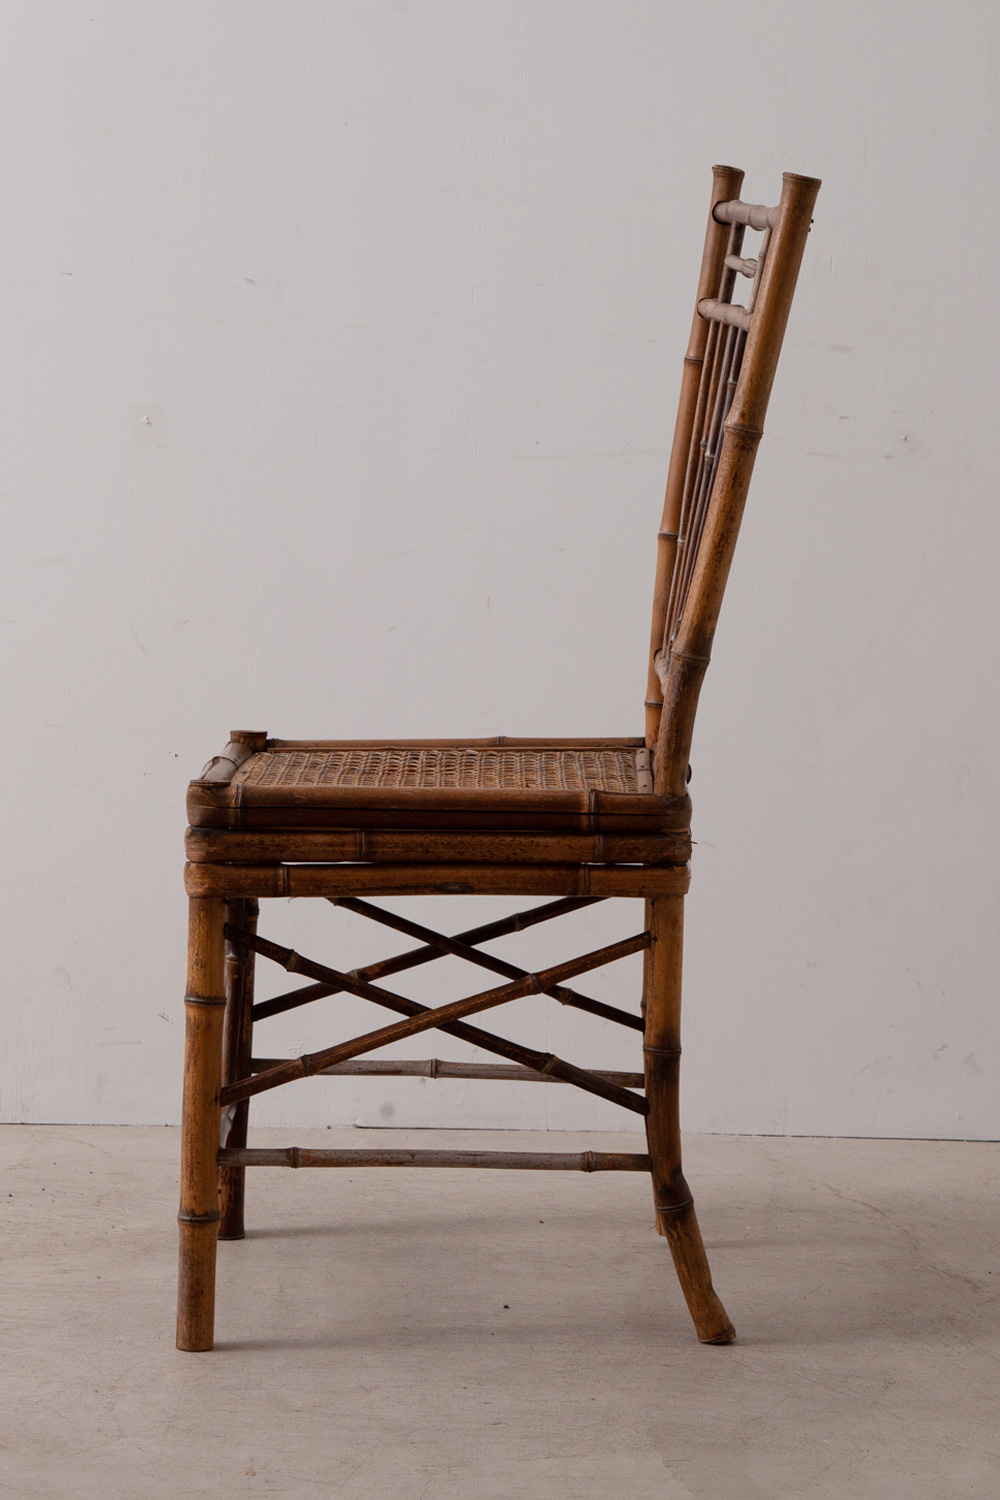 Antique Chair in Bamboo